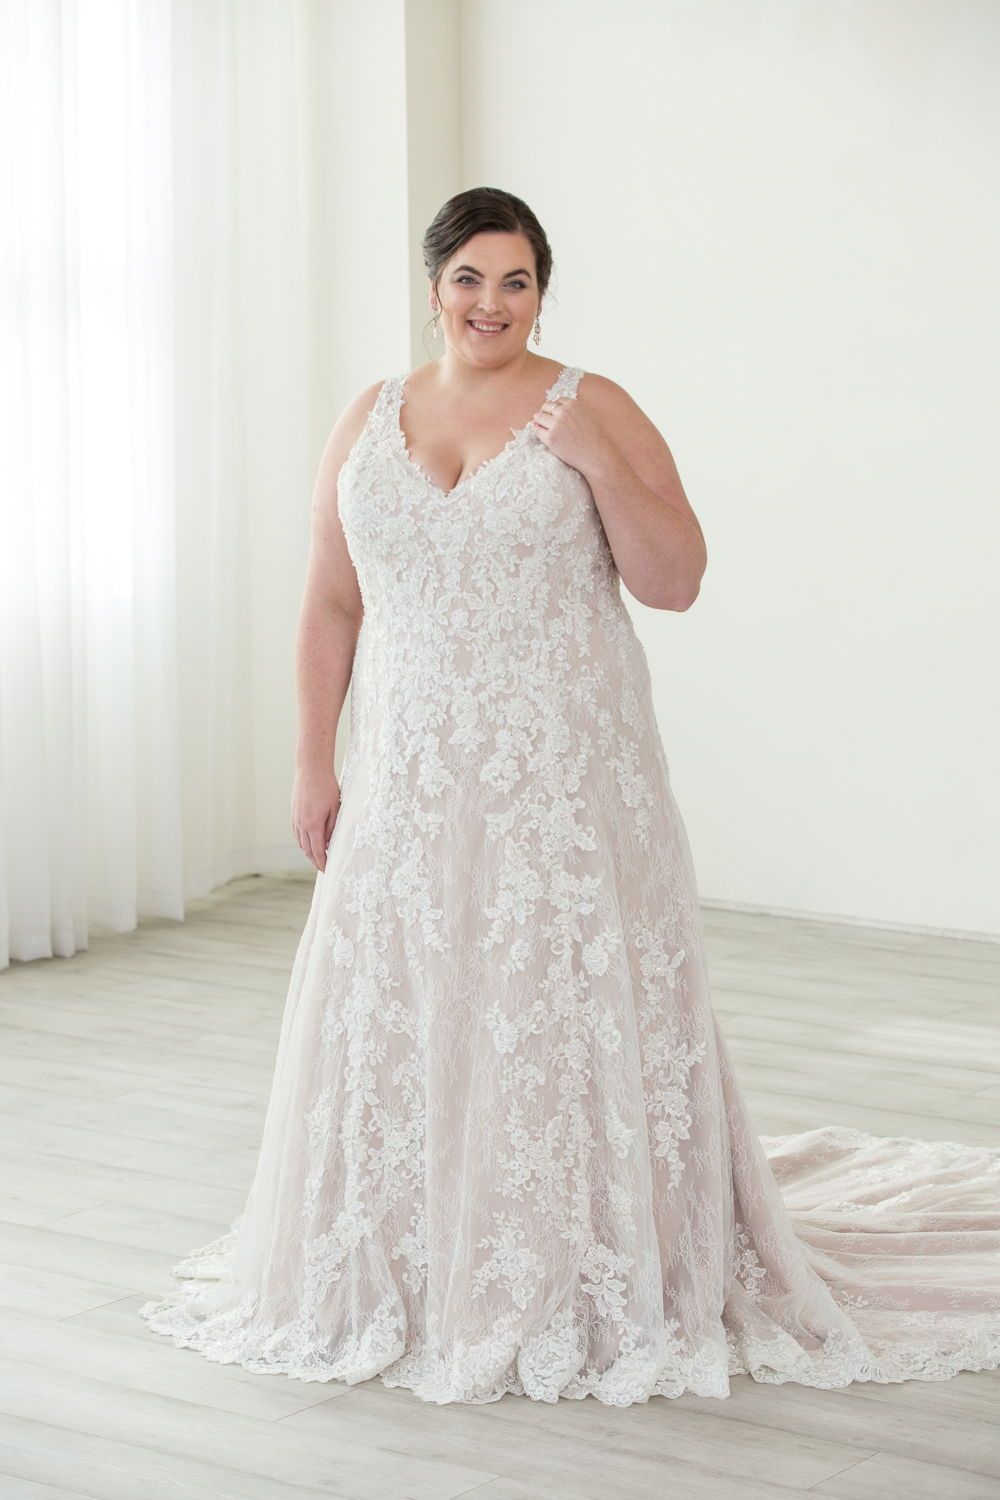 c9ee5691a9980 Plus Size wedding dress - A-line Justin Alexander wedding gown. Portland,  OR bridal boutique featuring gowns in all shapes and sizes.